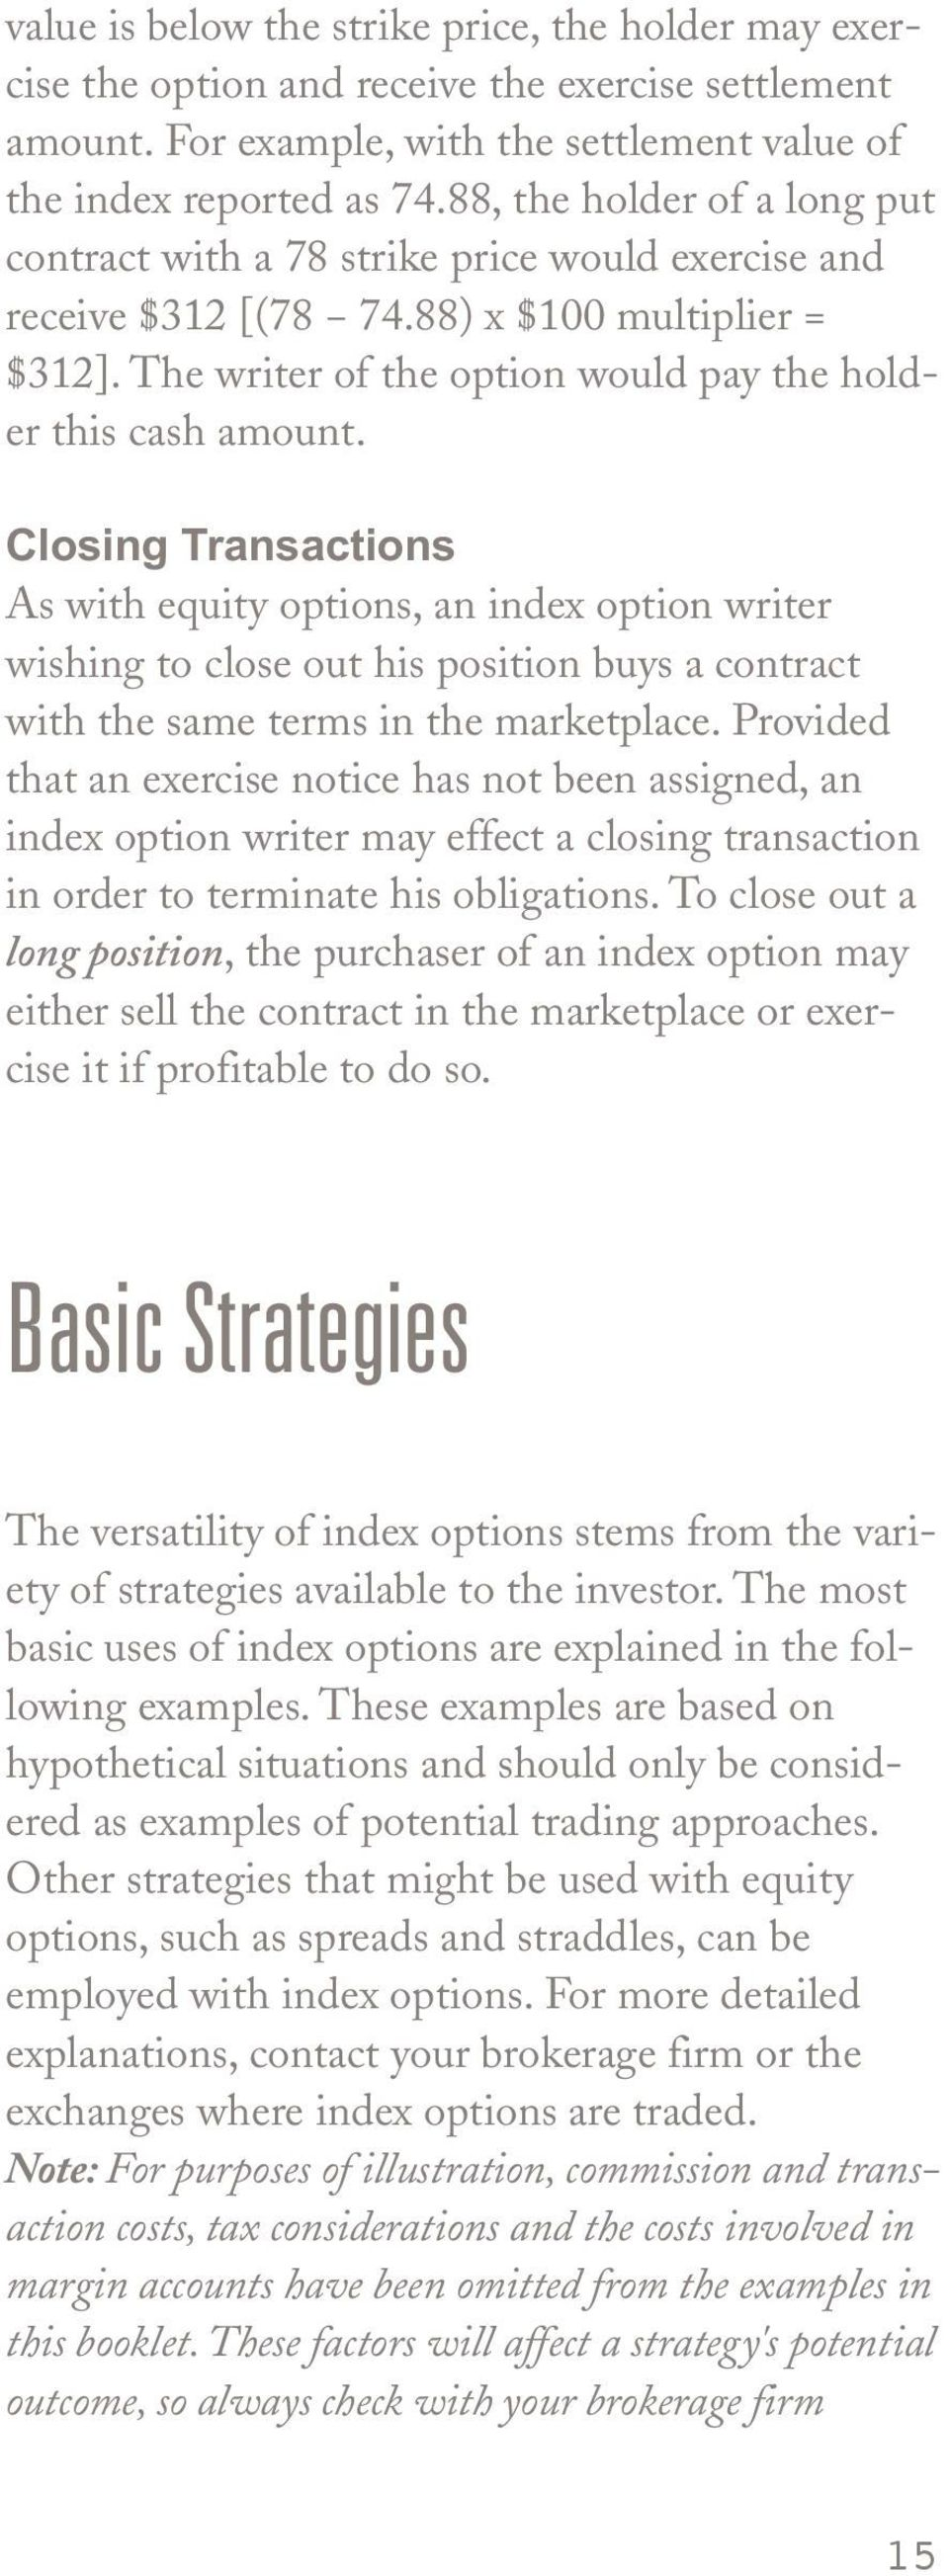 Closing Transactions As with equity options, an index option writer wishing to close out his position buys a contract with the same terms in the marketplace.